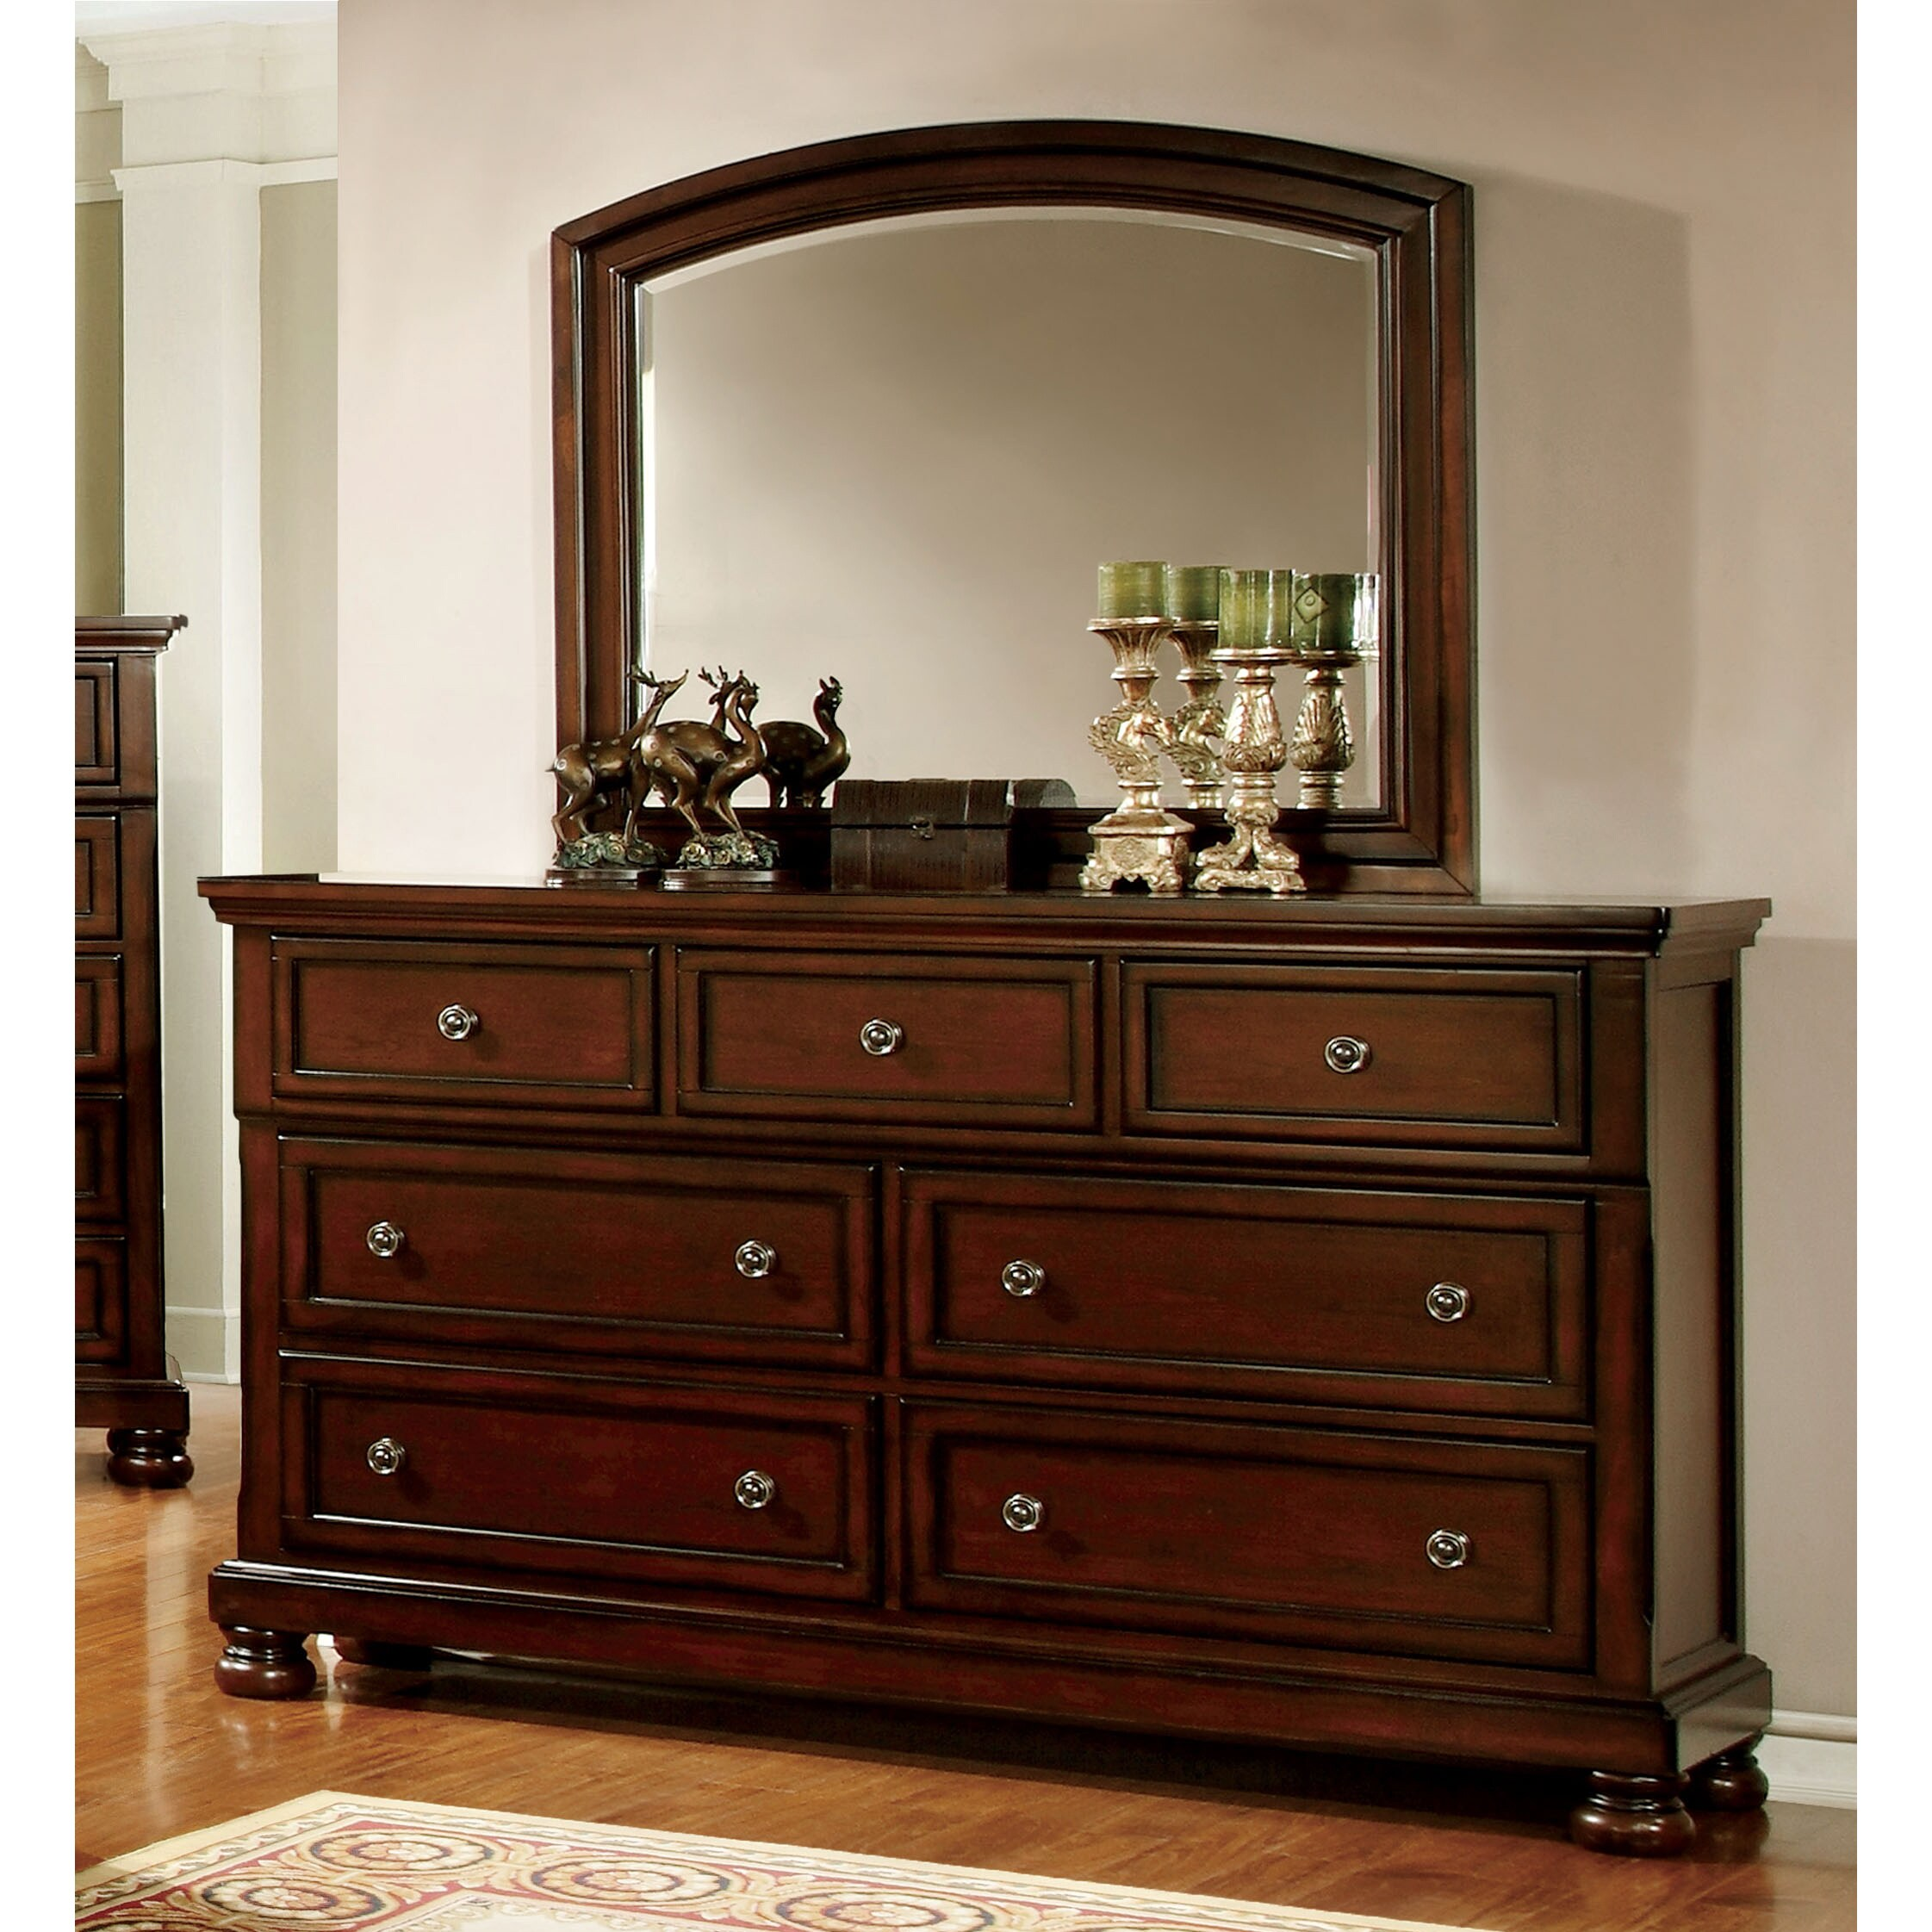 ayeda shipping free home product today mirror of piece america transitional furniture dresser and overstock garden ii set